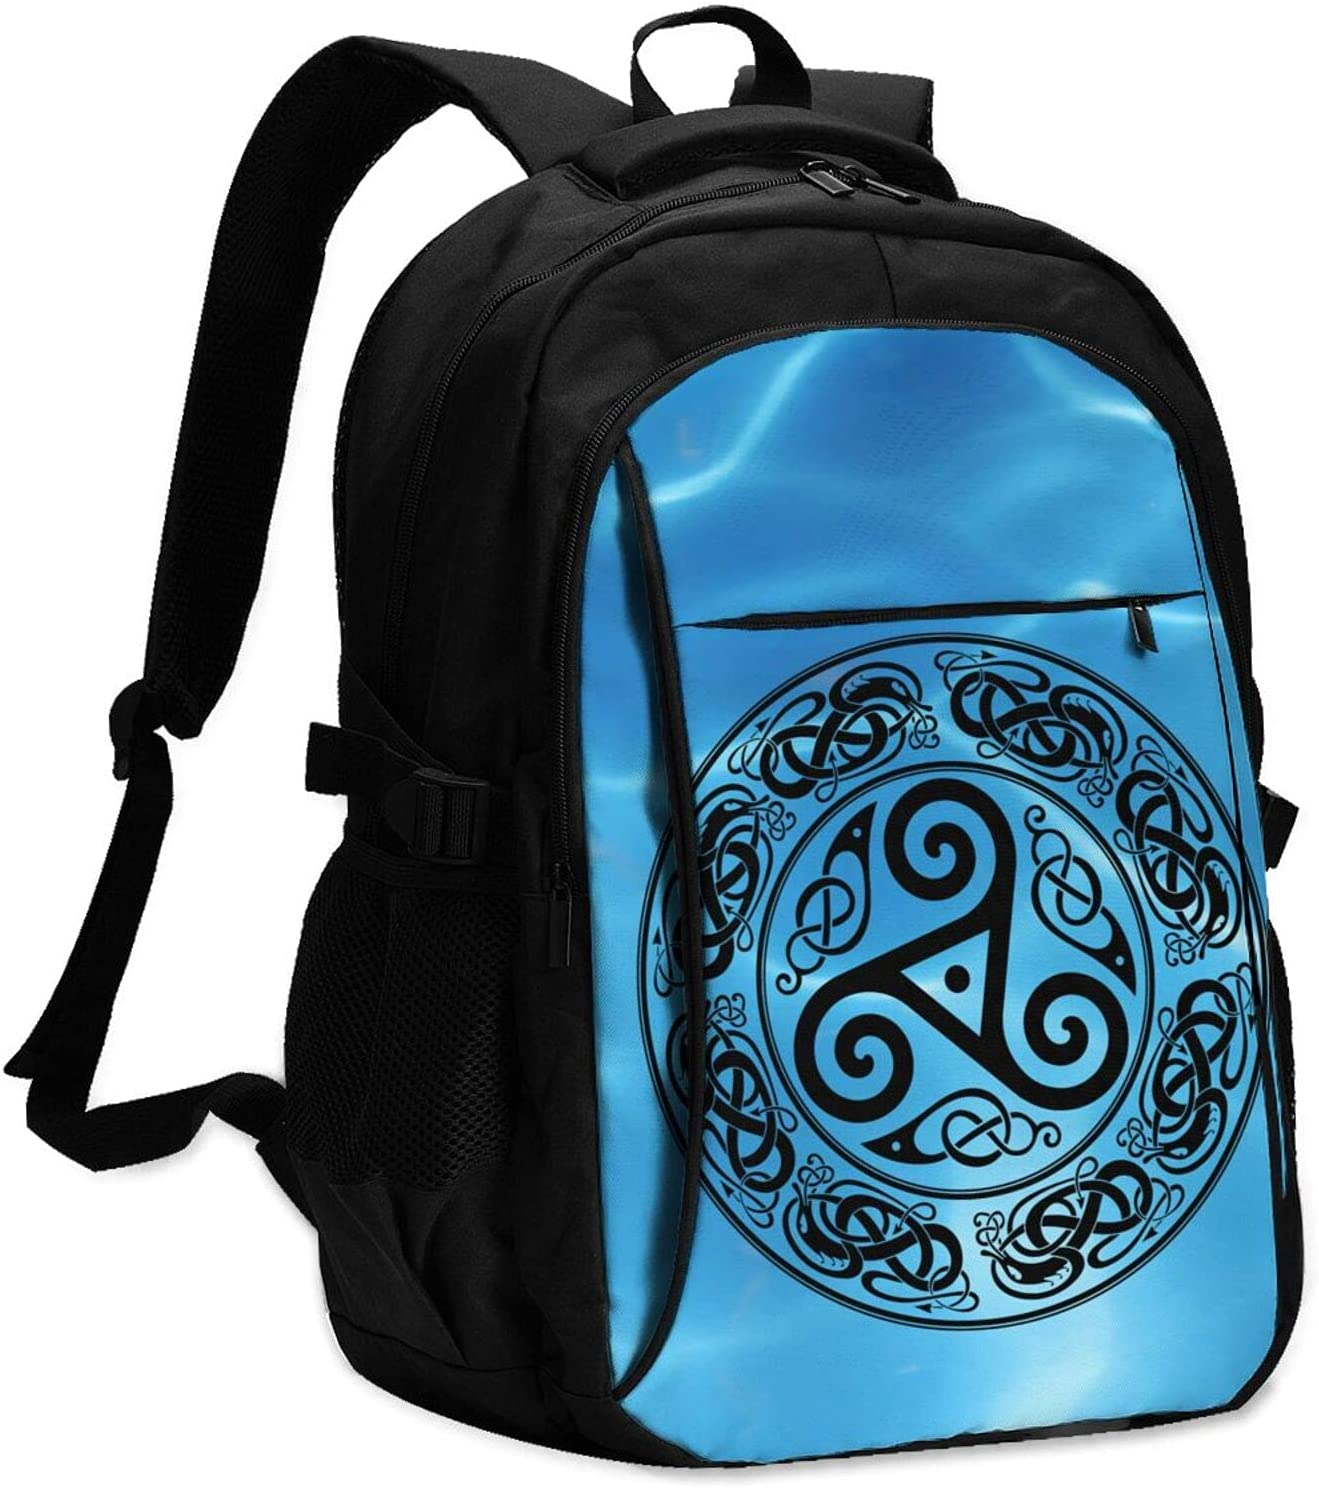 The Trisk-Elion Max 72% OFF Usb Charging Port Laptop Ranking TOP20 Backpac Travel Backpack